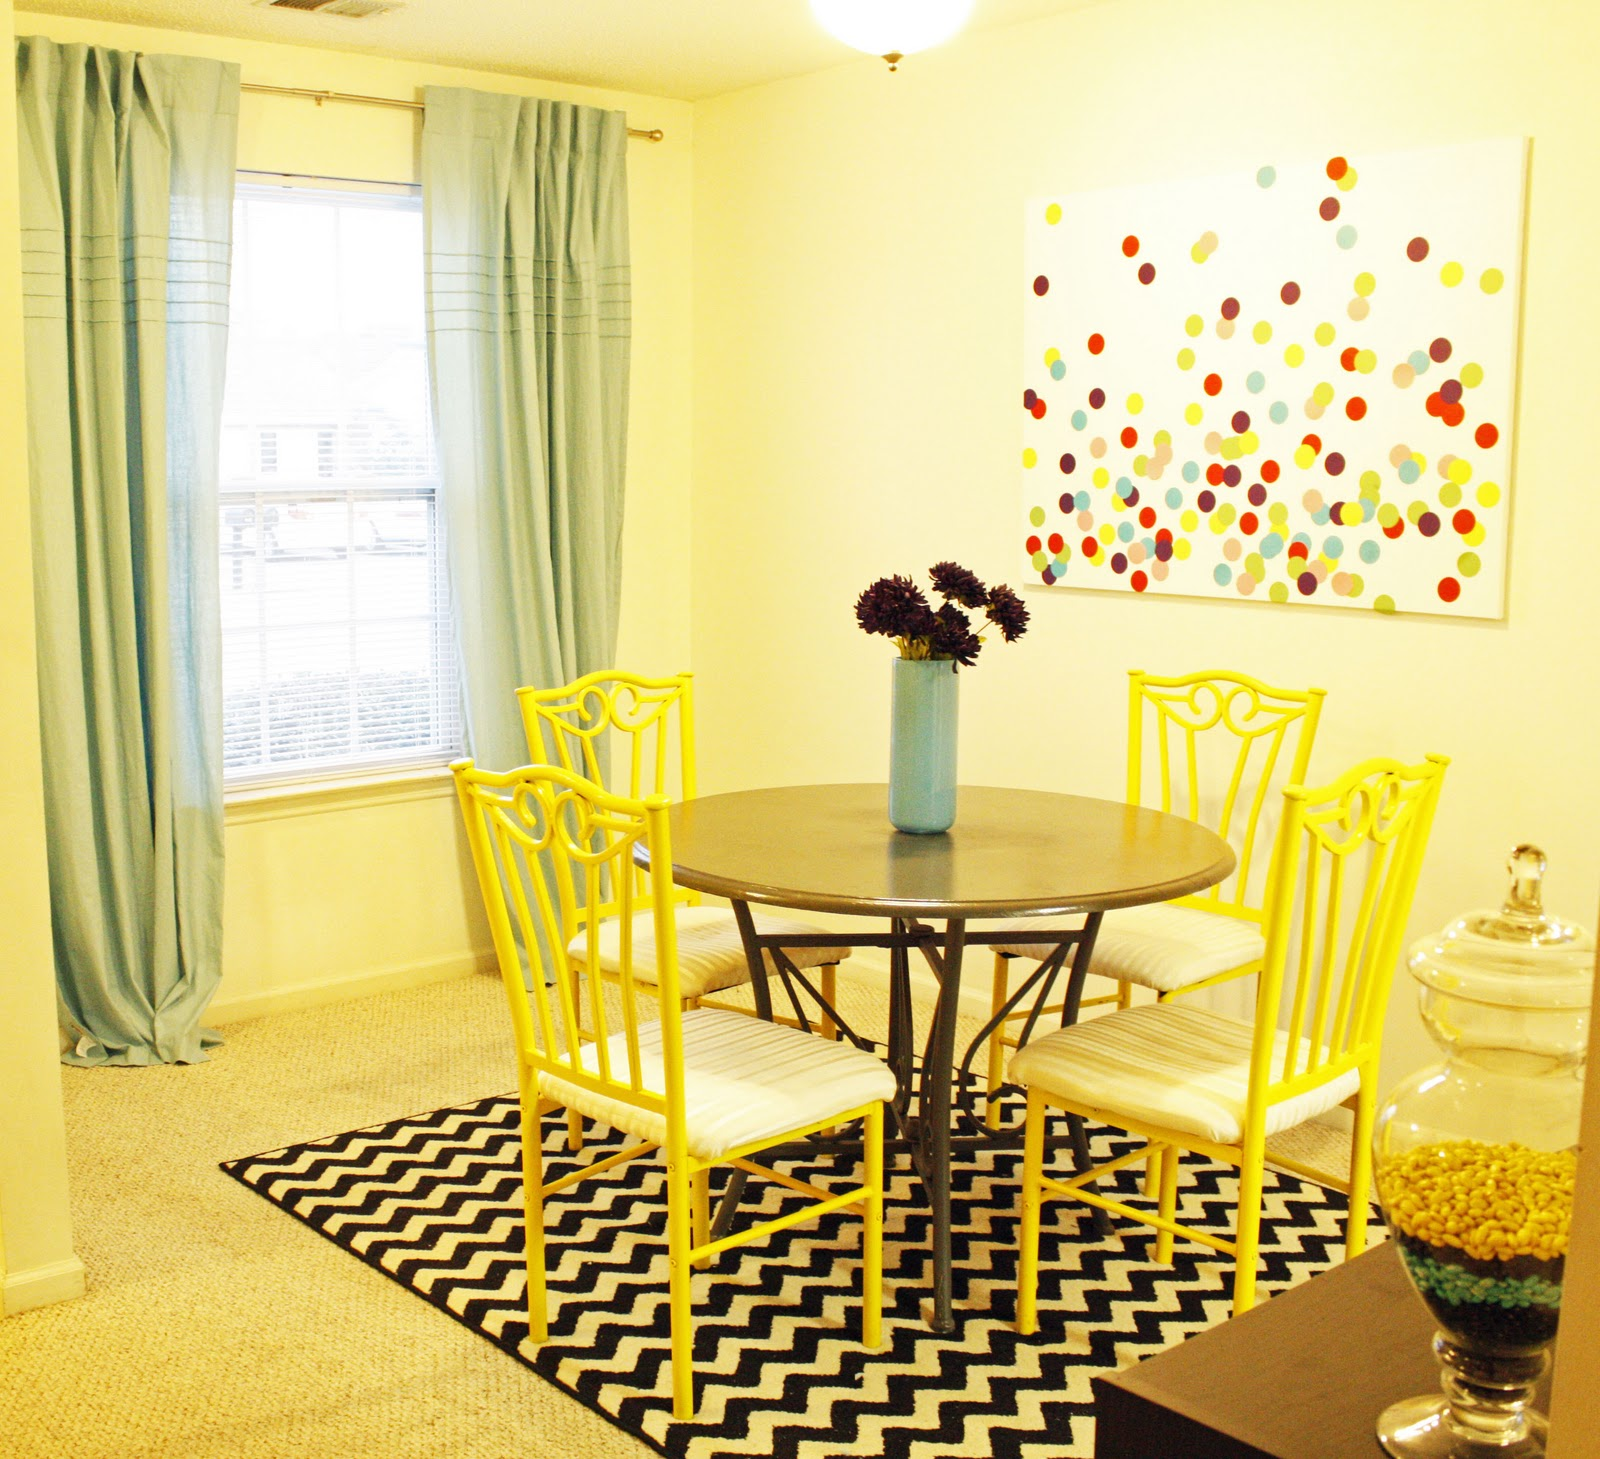 Dining Room On A Budget: Jonathan Adler Dining Room On A Budget